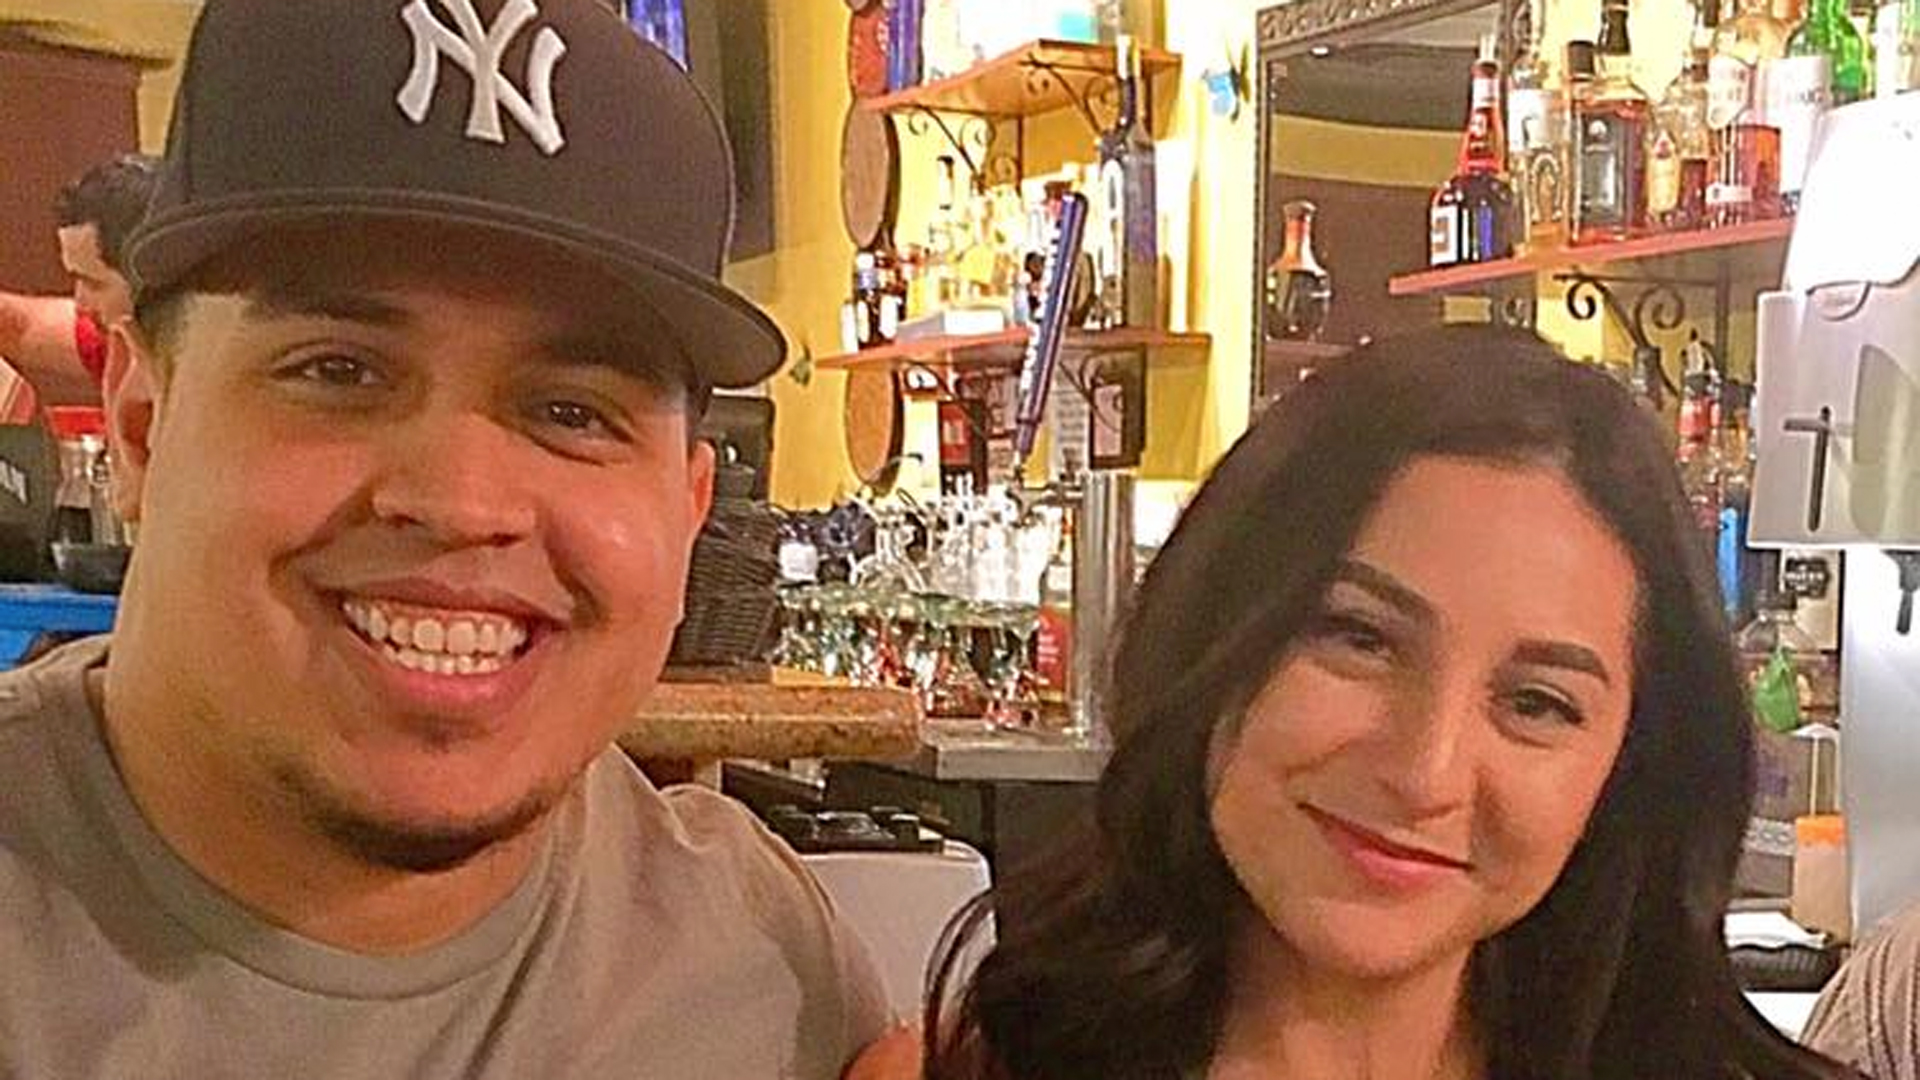 Jonathan Reynoso and Audrey Moran are seen in an image provided by the Indio Police Department.